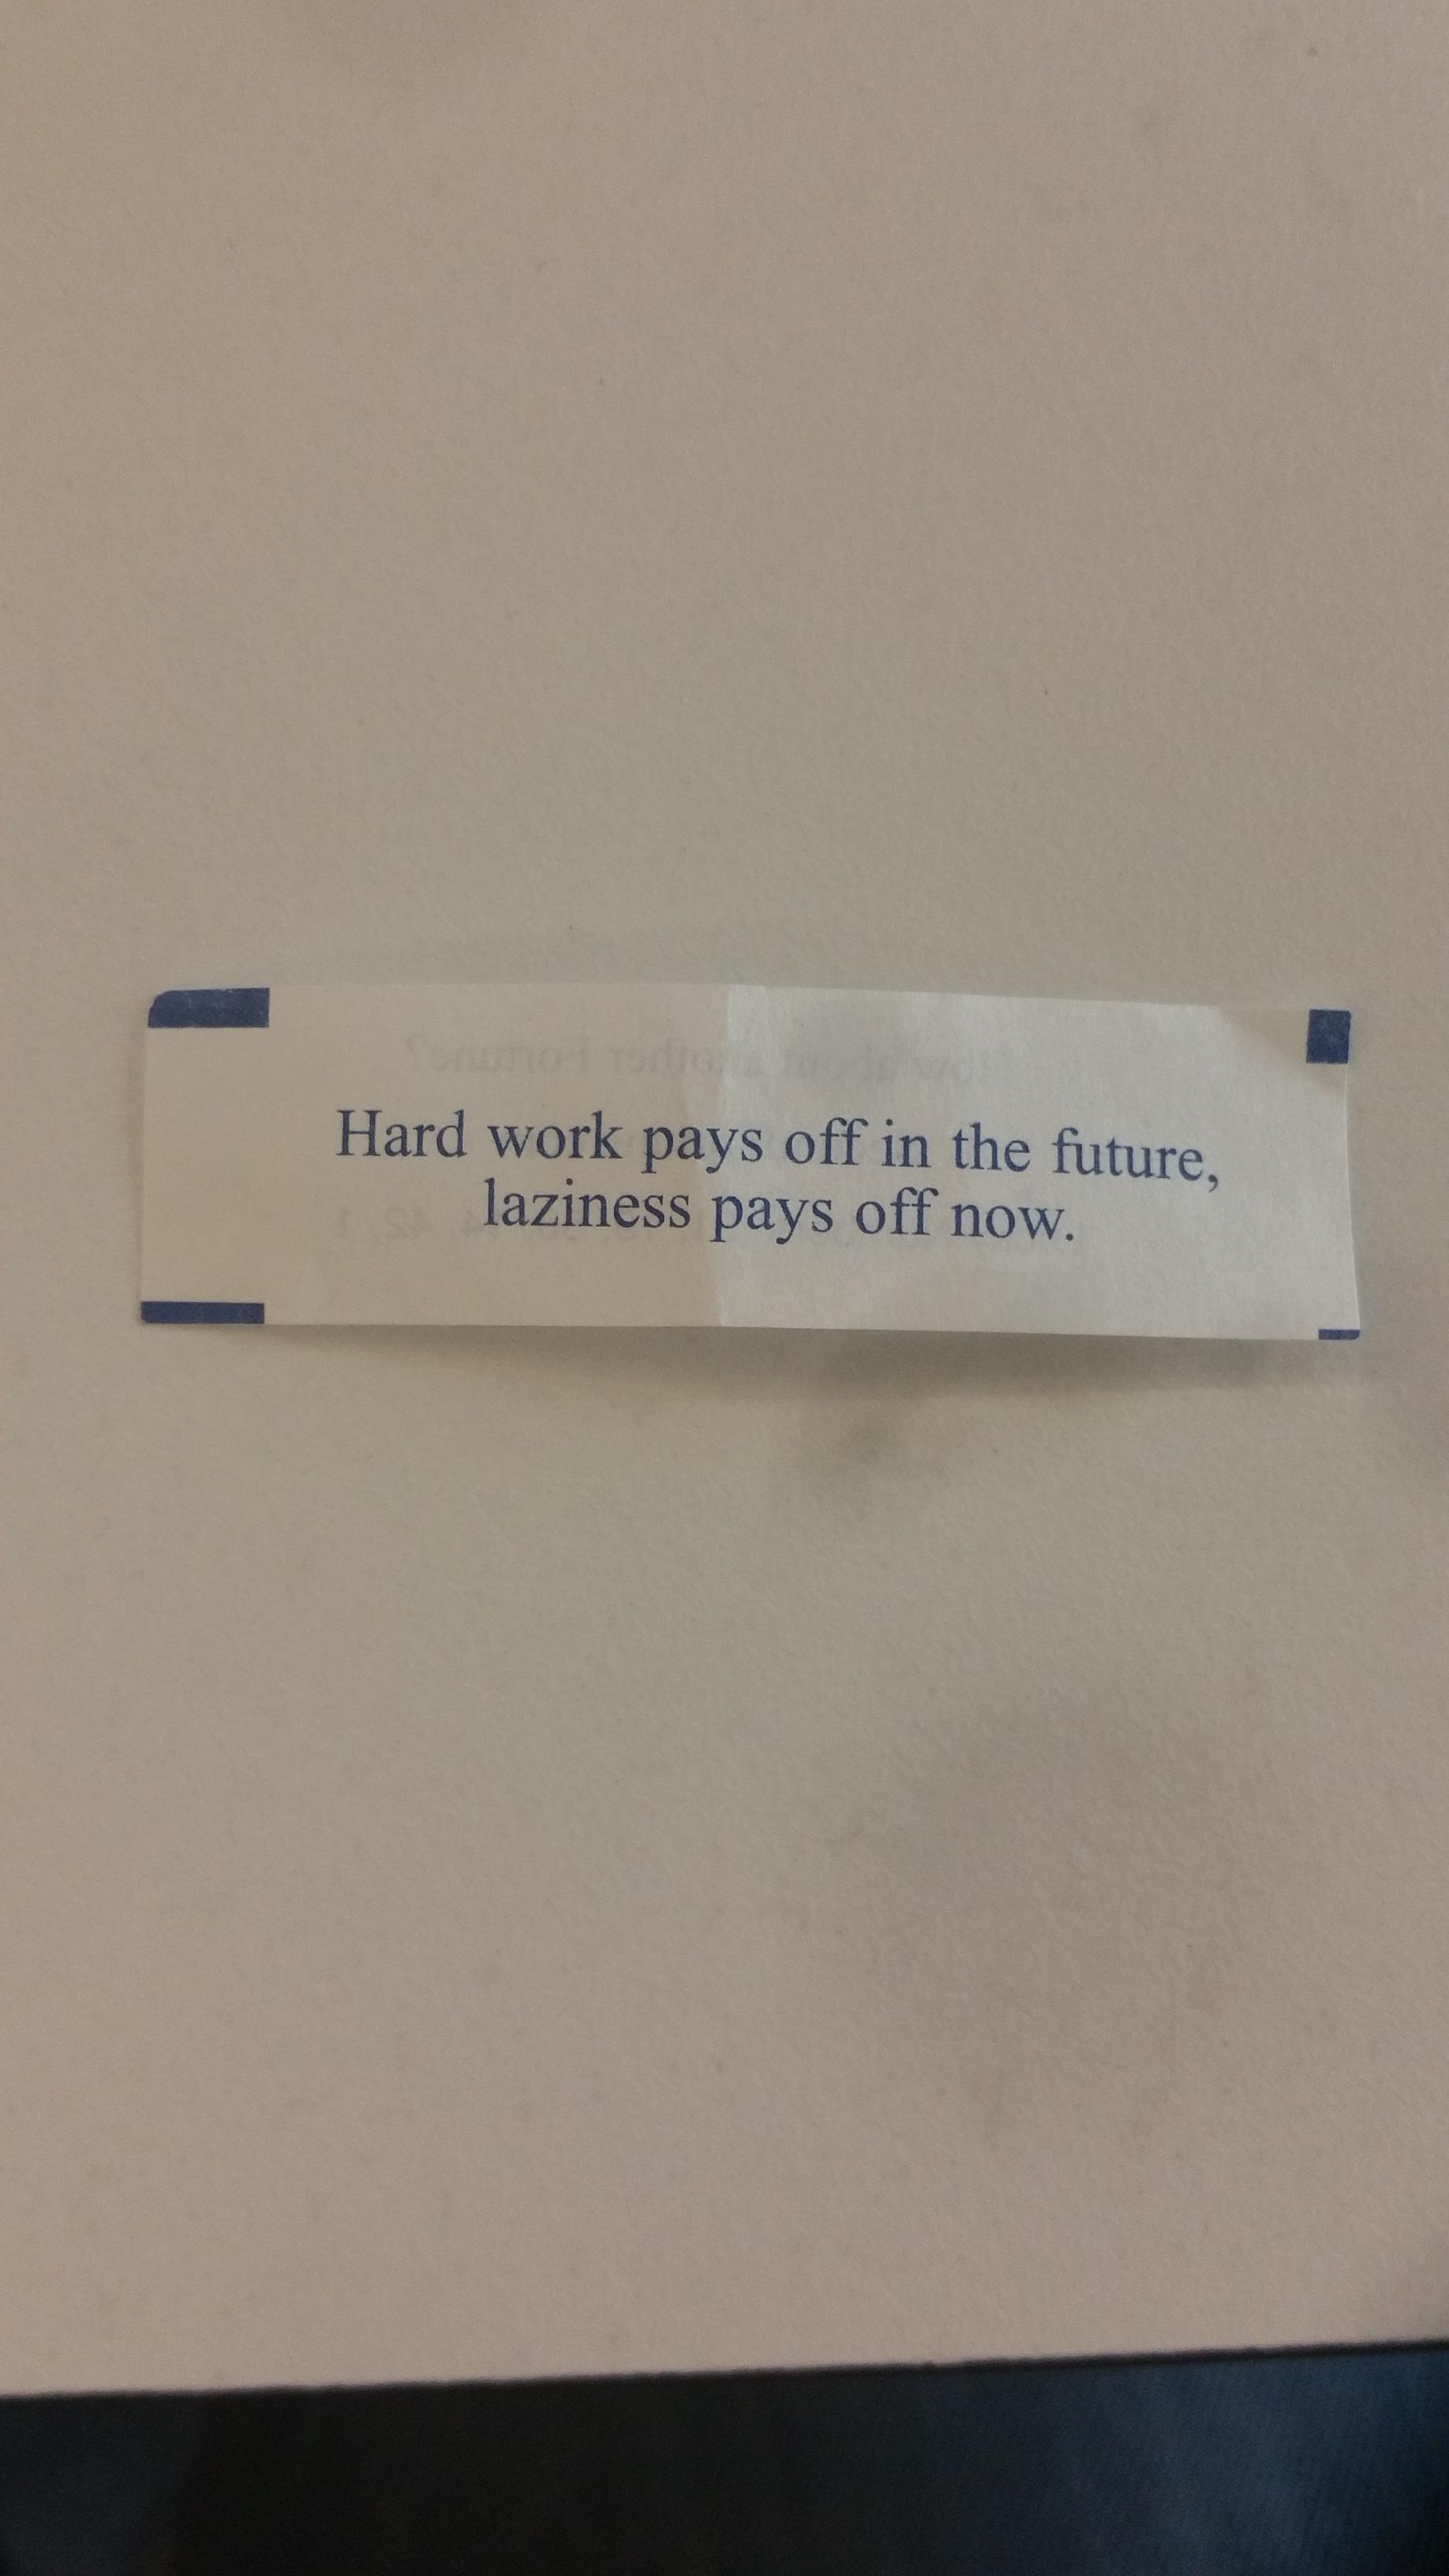 Hard work pays off in the future, laziness pays off now. https://inspirational.ly